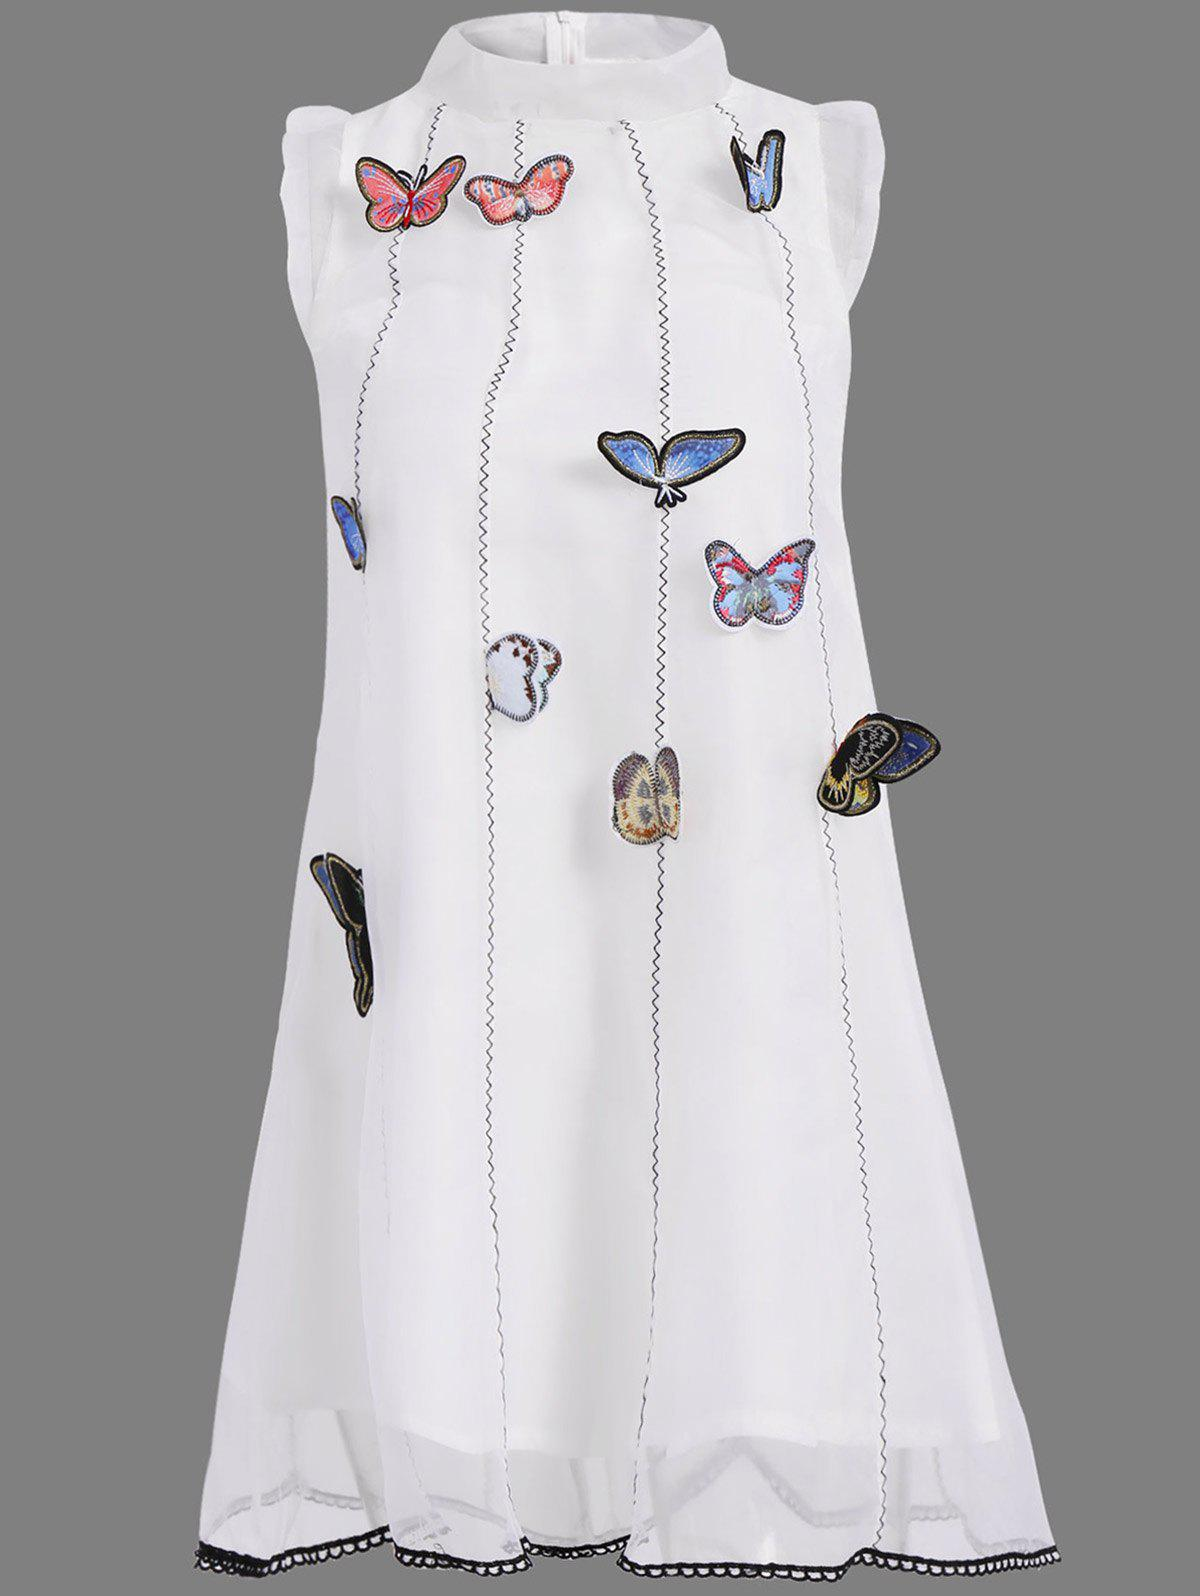 Graceful Stand-Up Collar Sleeveless Embroidered Butterfly Embellished A-Line Women's Dress